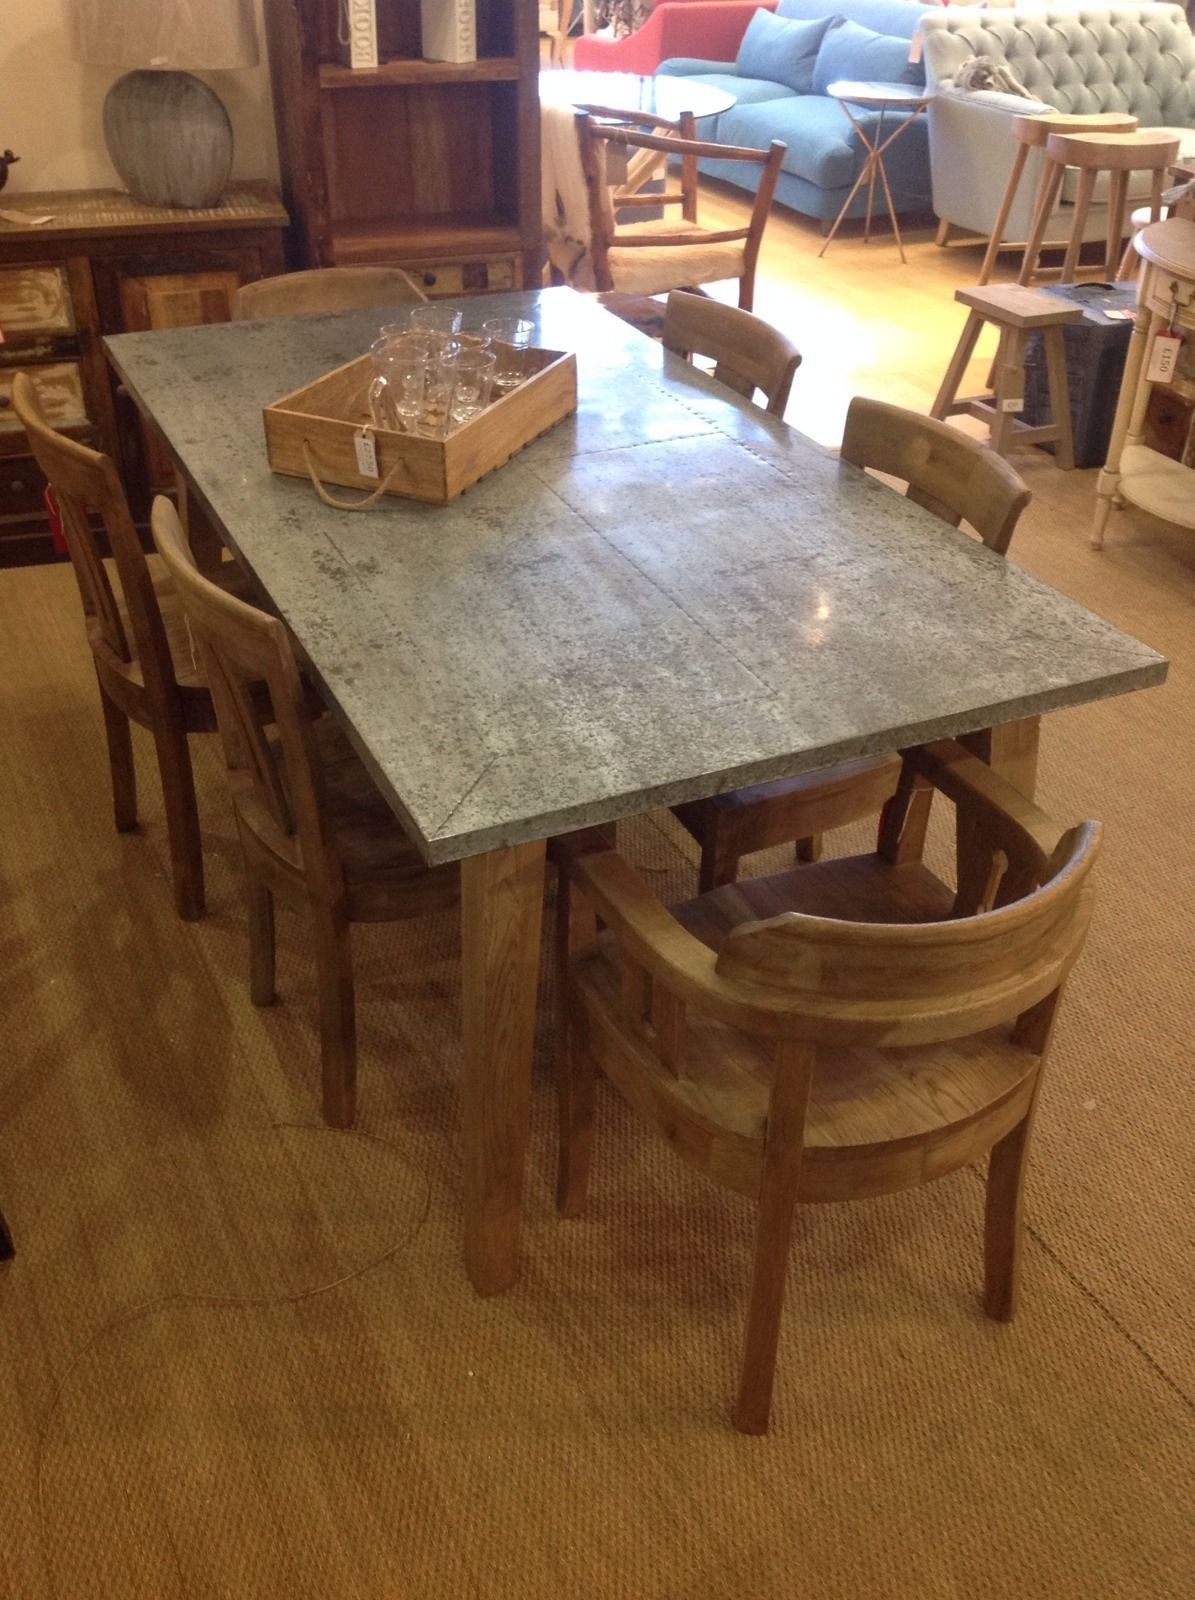 Large Daddy Zinc Top Oak Dining Table with oak frame  : 54459d7e27b453055820cfde37c96619 from www.pinterest.com size 1195 x 1600 jpeg 263kB